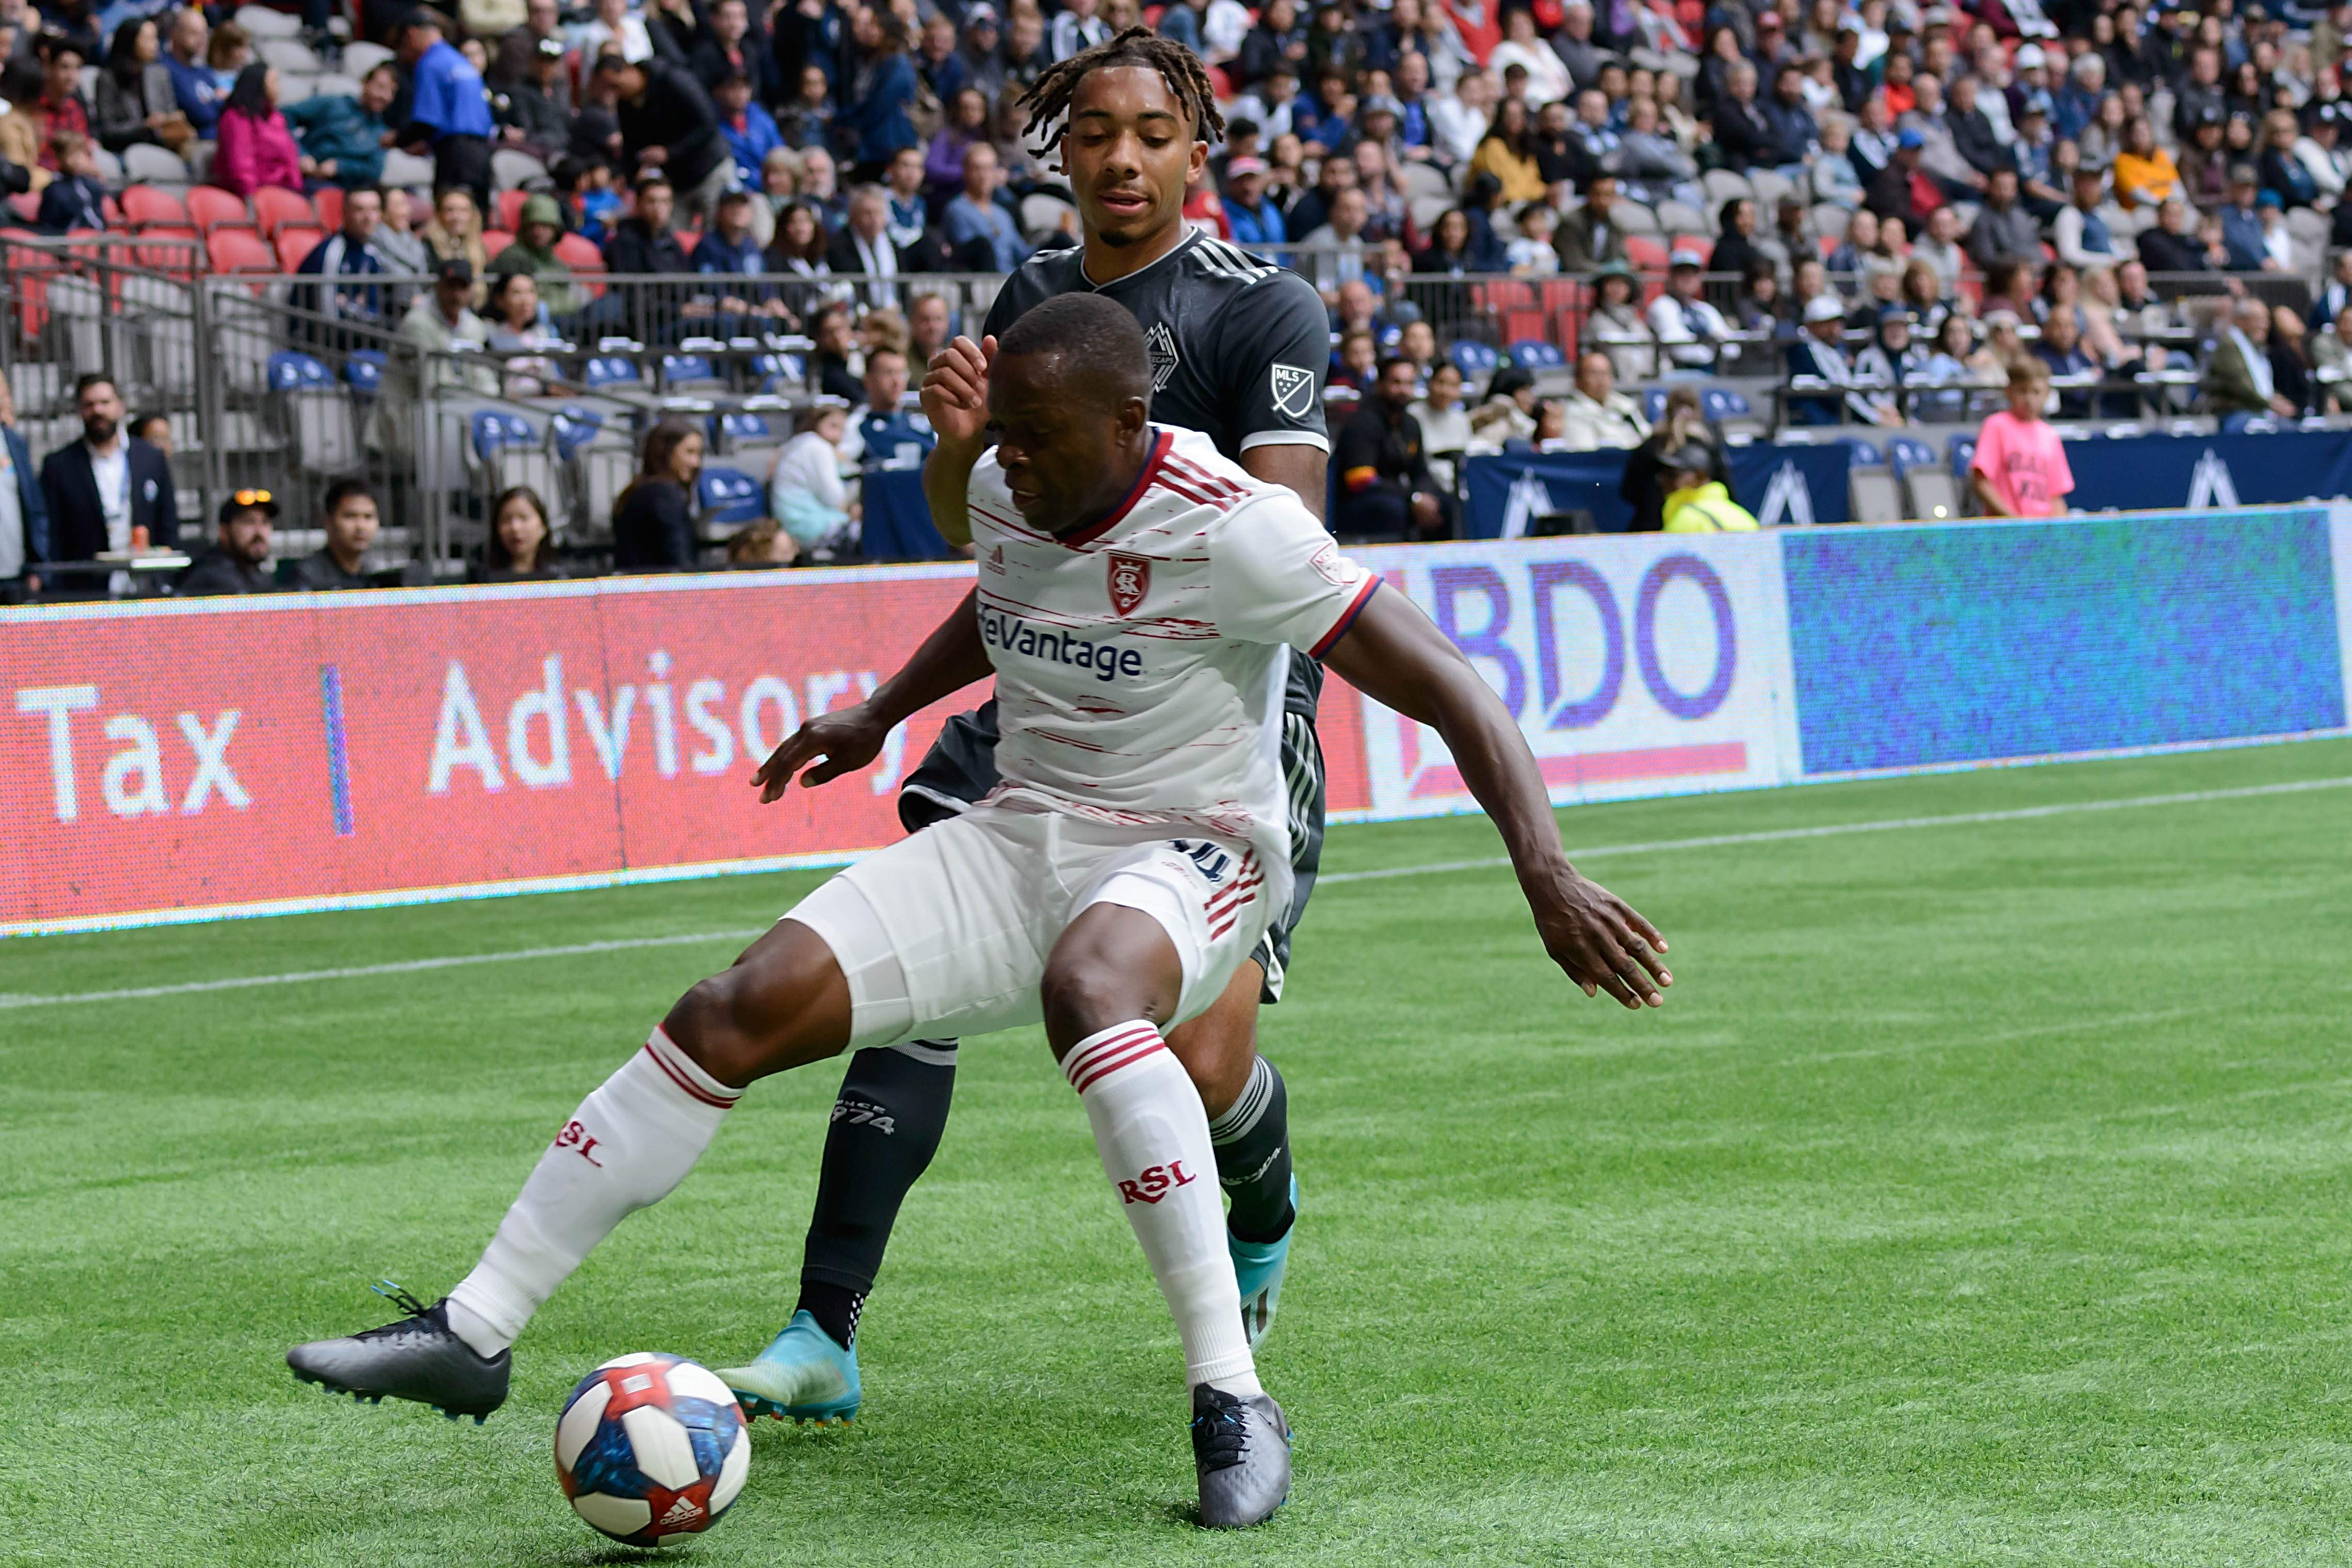 Vancouver Whitecaps FC vs Real Salt Lake in their 2019 MLS regular season finale at BC Place. Photo by Simon Fearn ISN